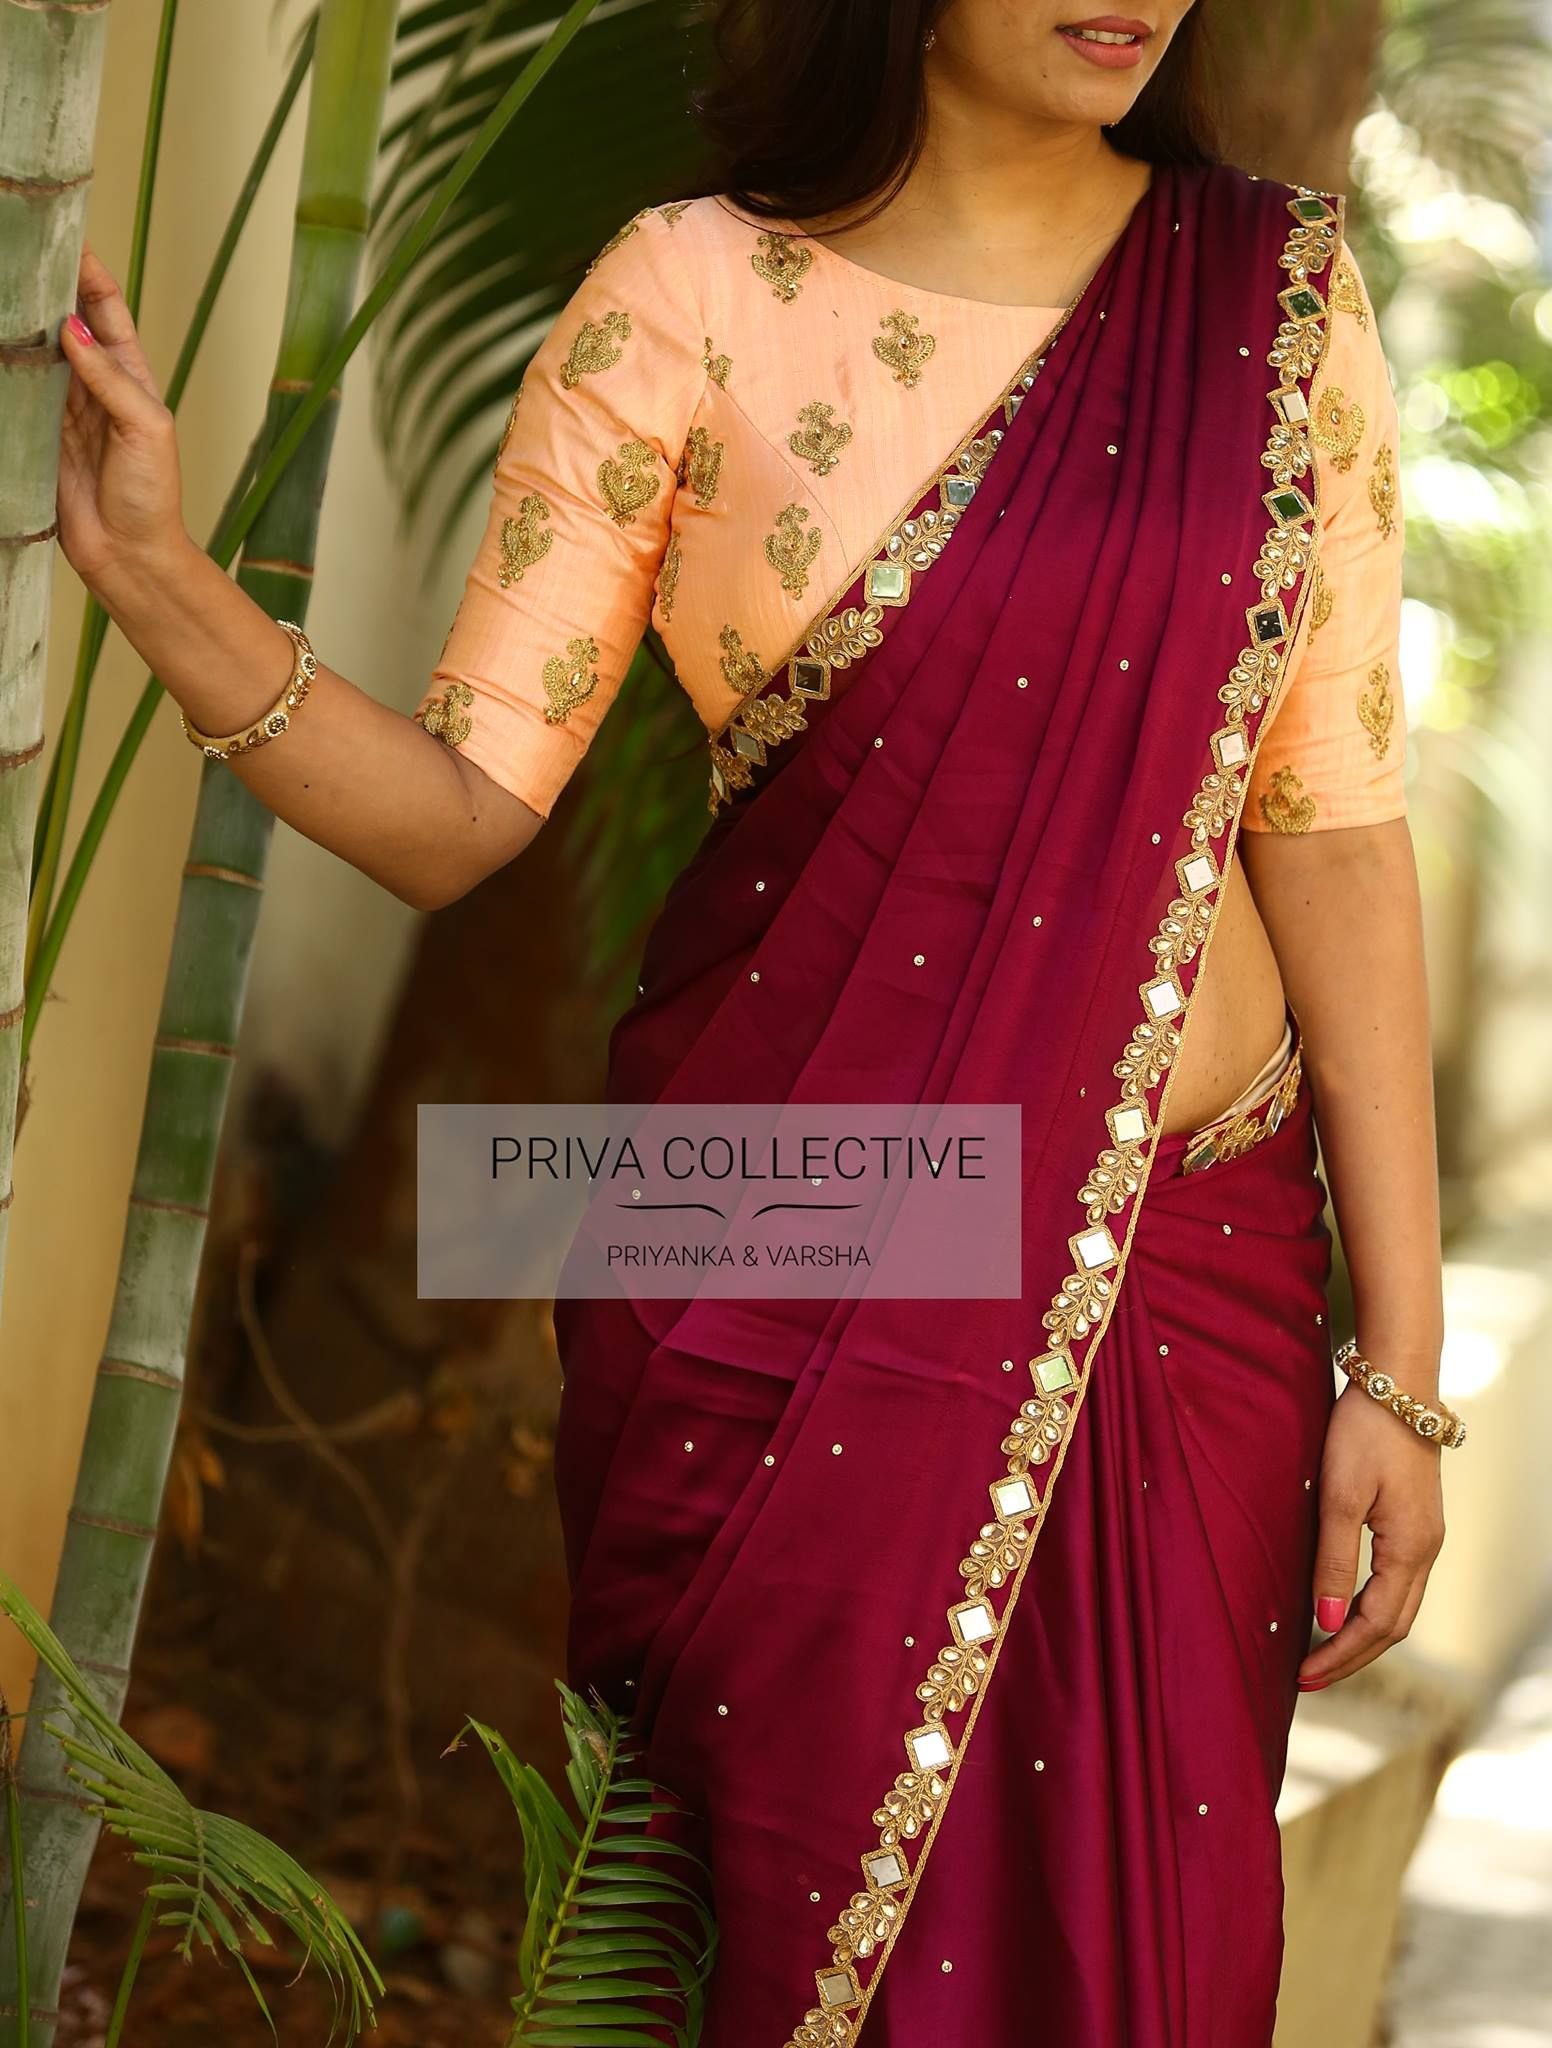 Pv 3586 Peach And Wine Price Rs 4300 Br Steal The Show In This Lovely Num Designer Saree Blouse Patterns Fancy Sarees Indian Saree Blouses Designs